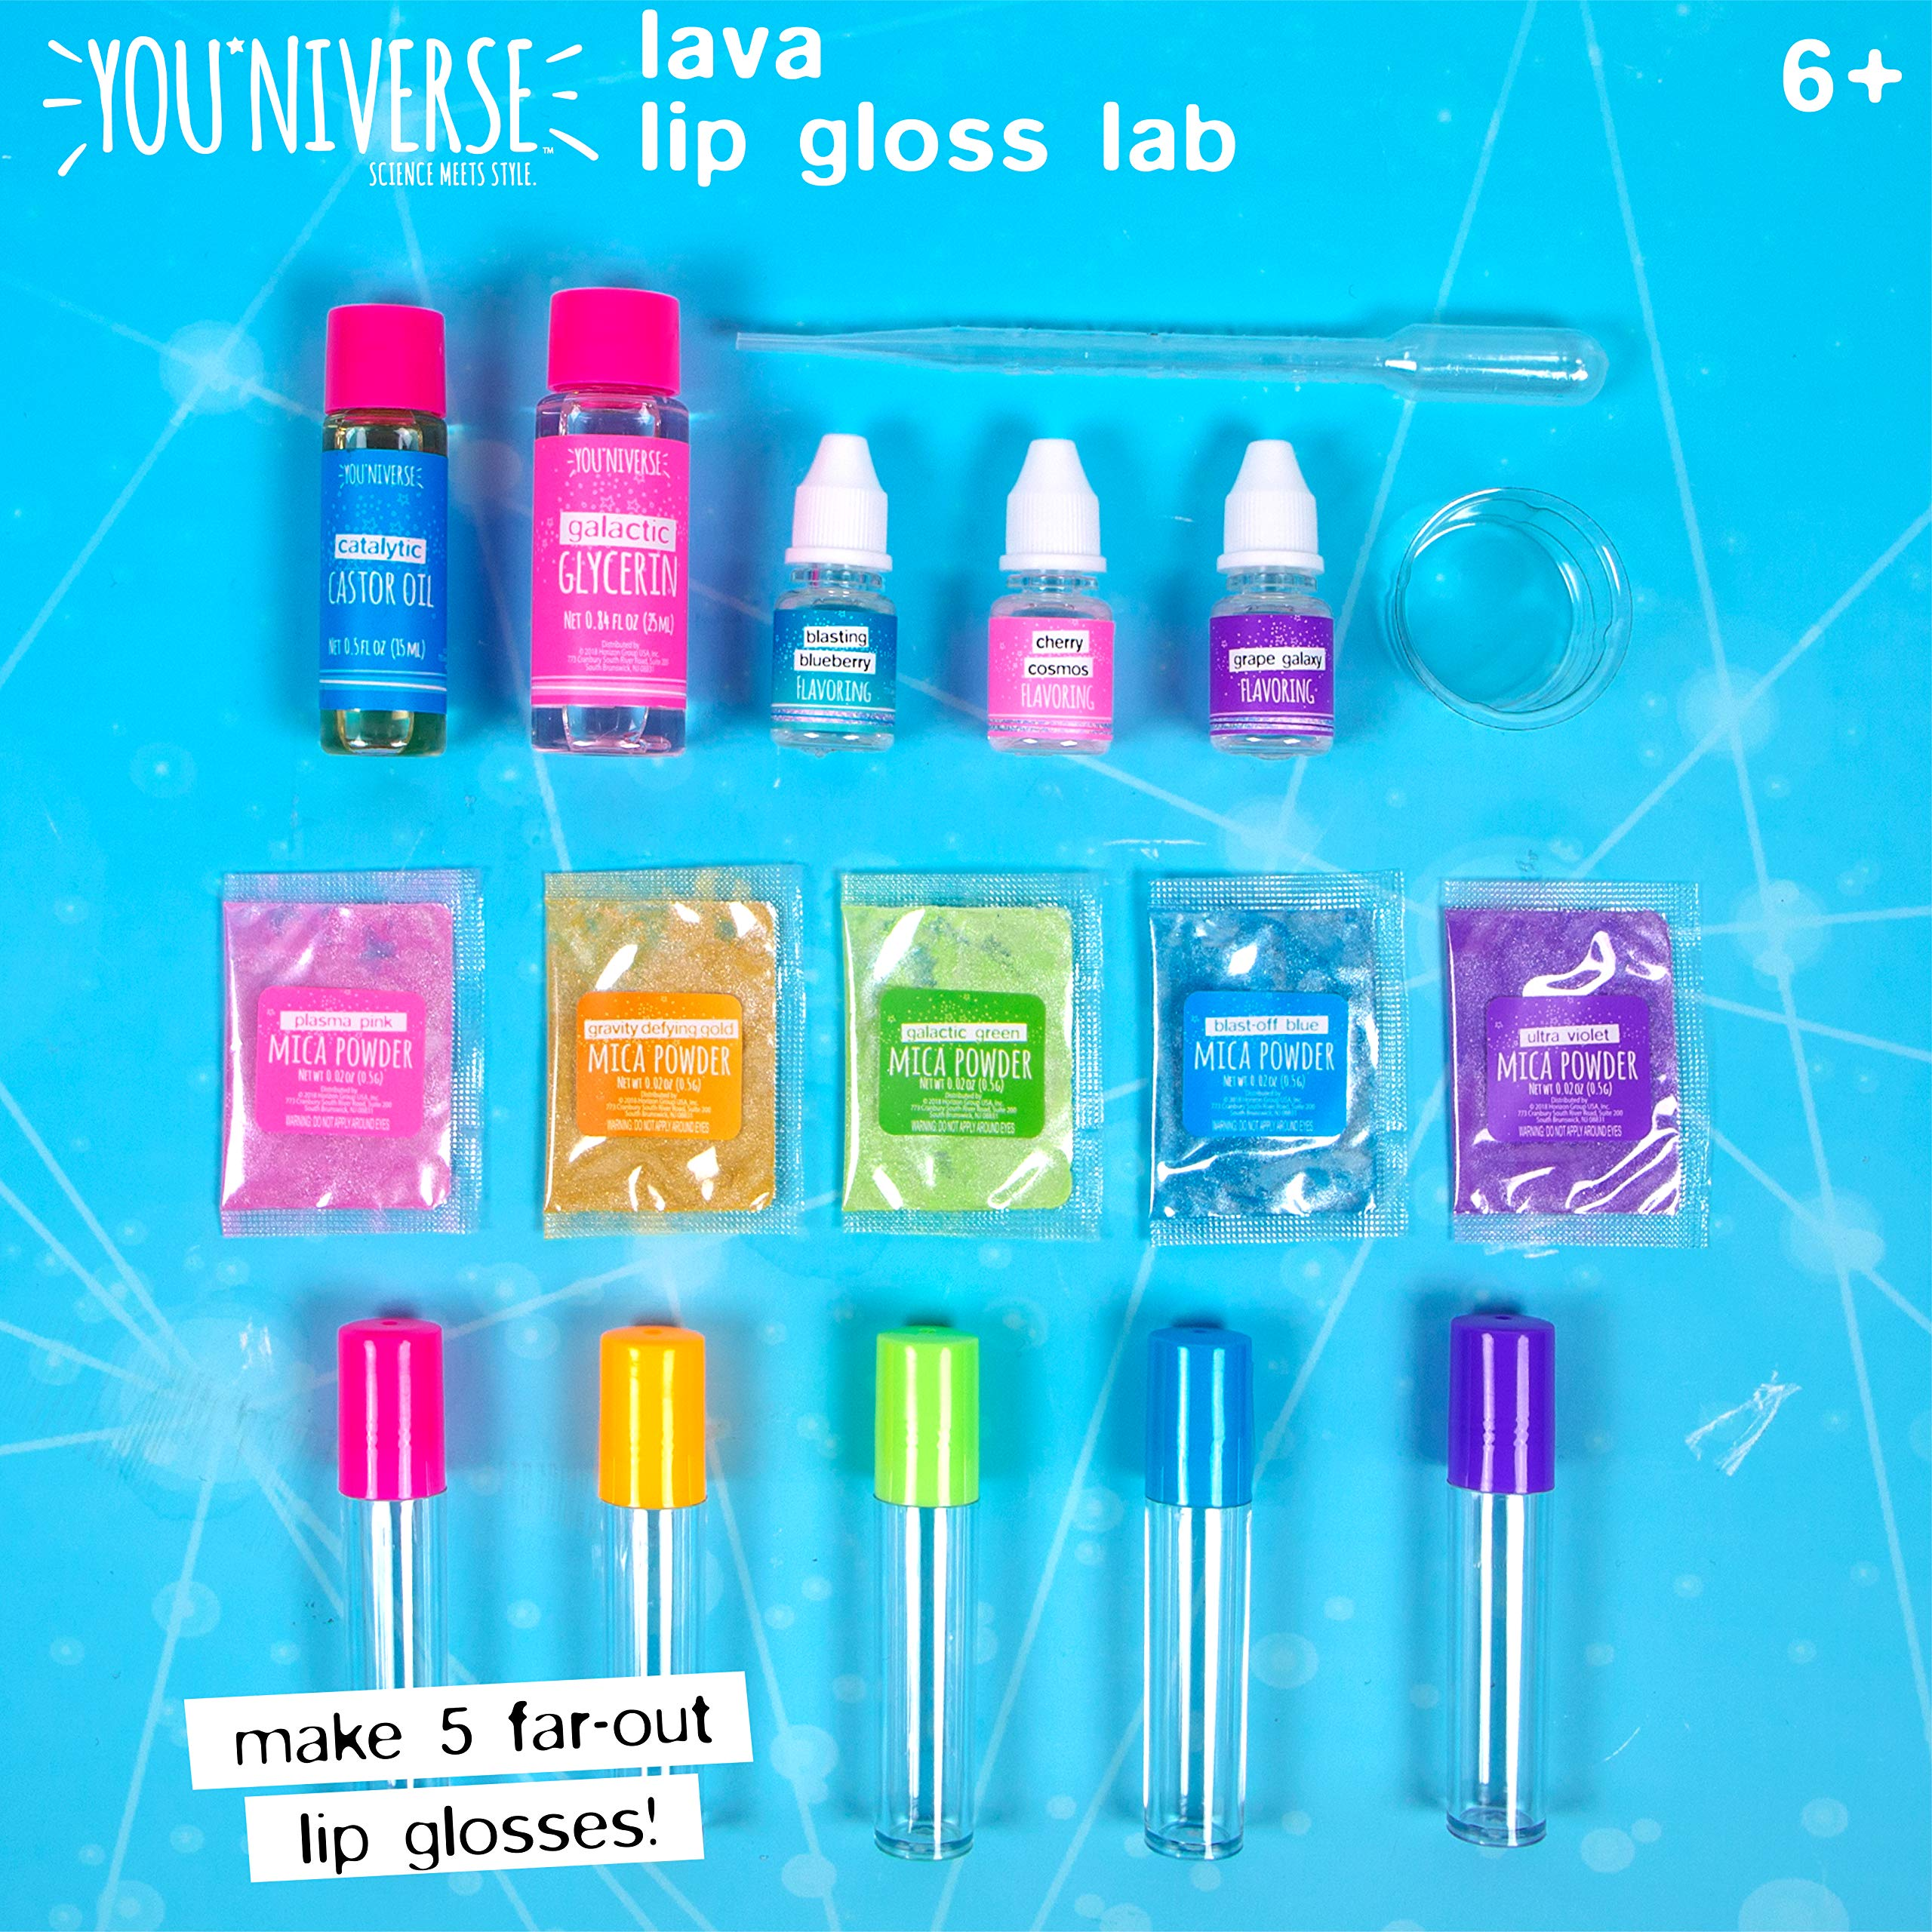 Youniverse Create Your Own Lava Lip Gloss Lab Craft Kit, Assorted